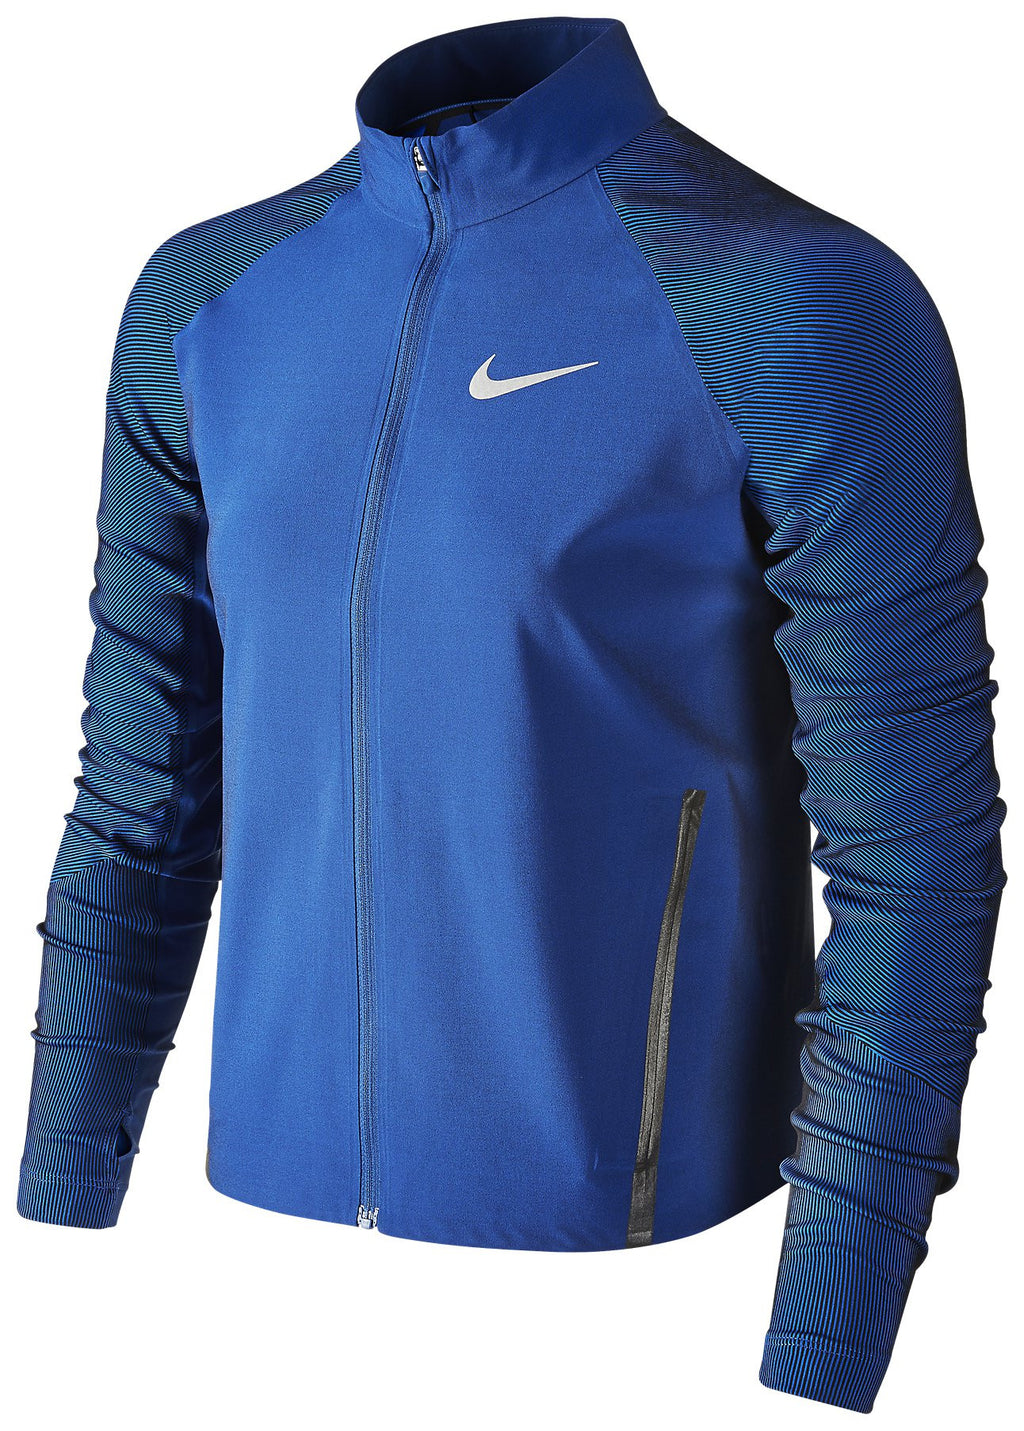 Women's  Nike Twill Stadium Running Jacket Size Medium 822552-451